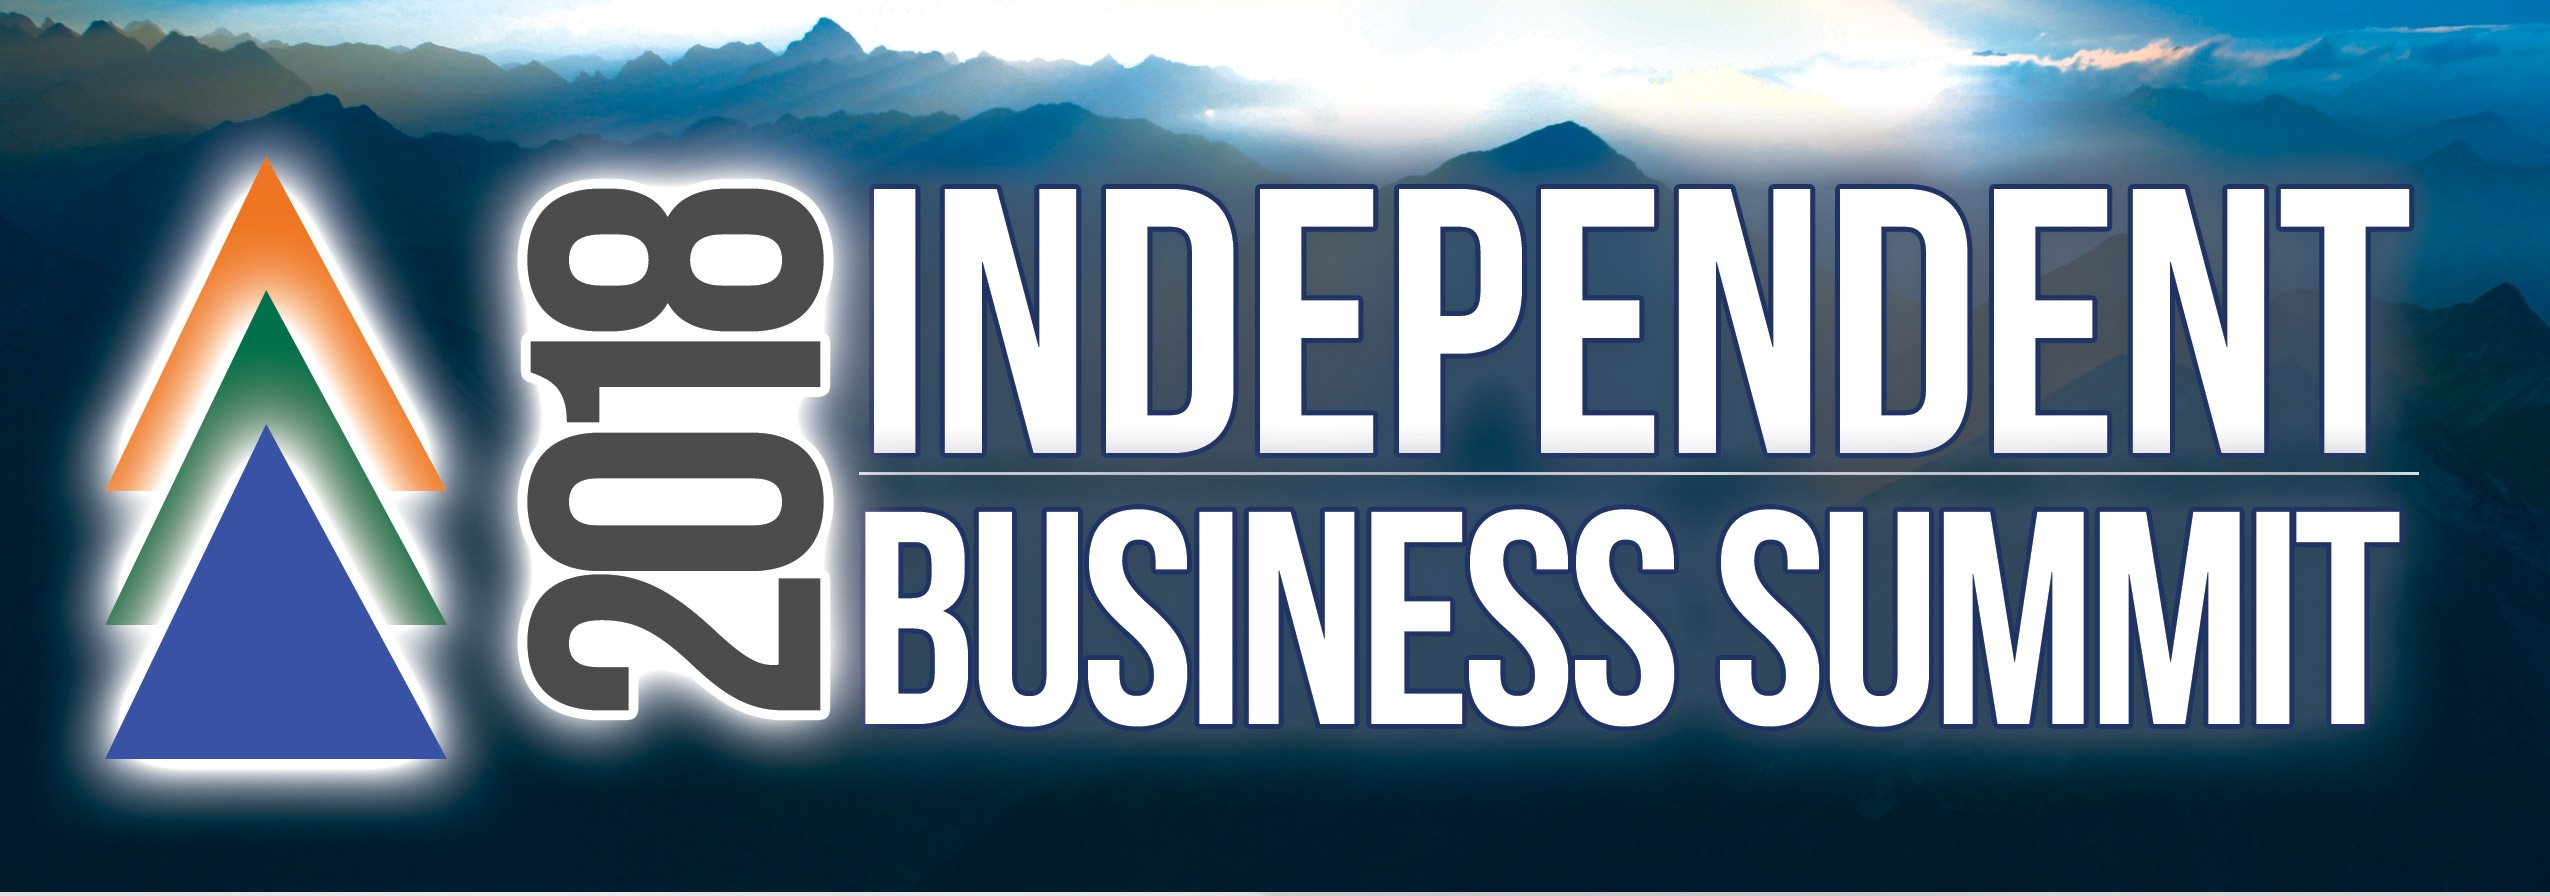 2018 Independent Business Summit